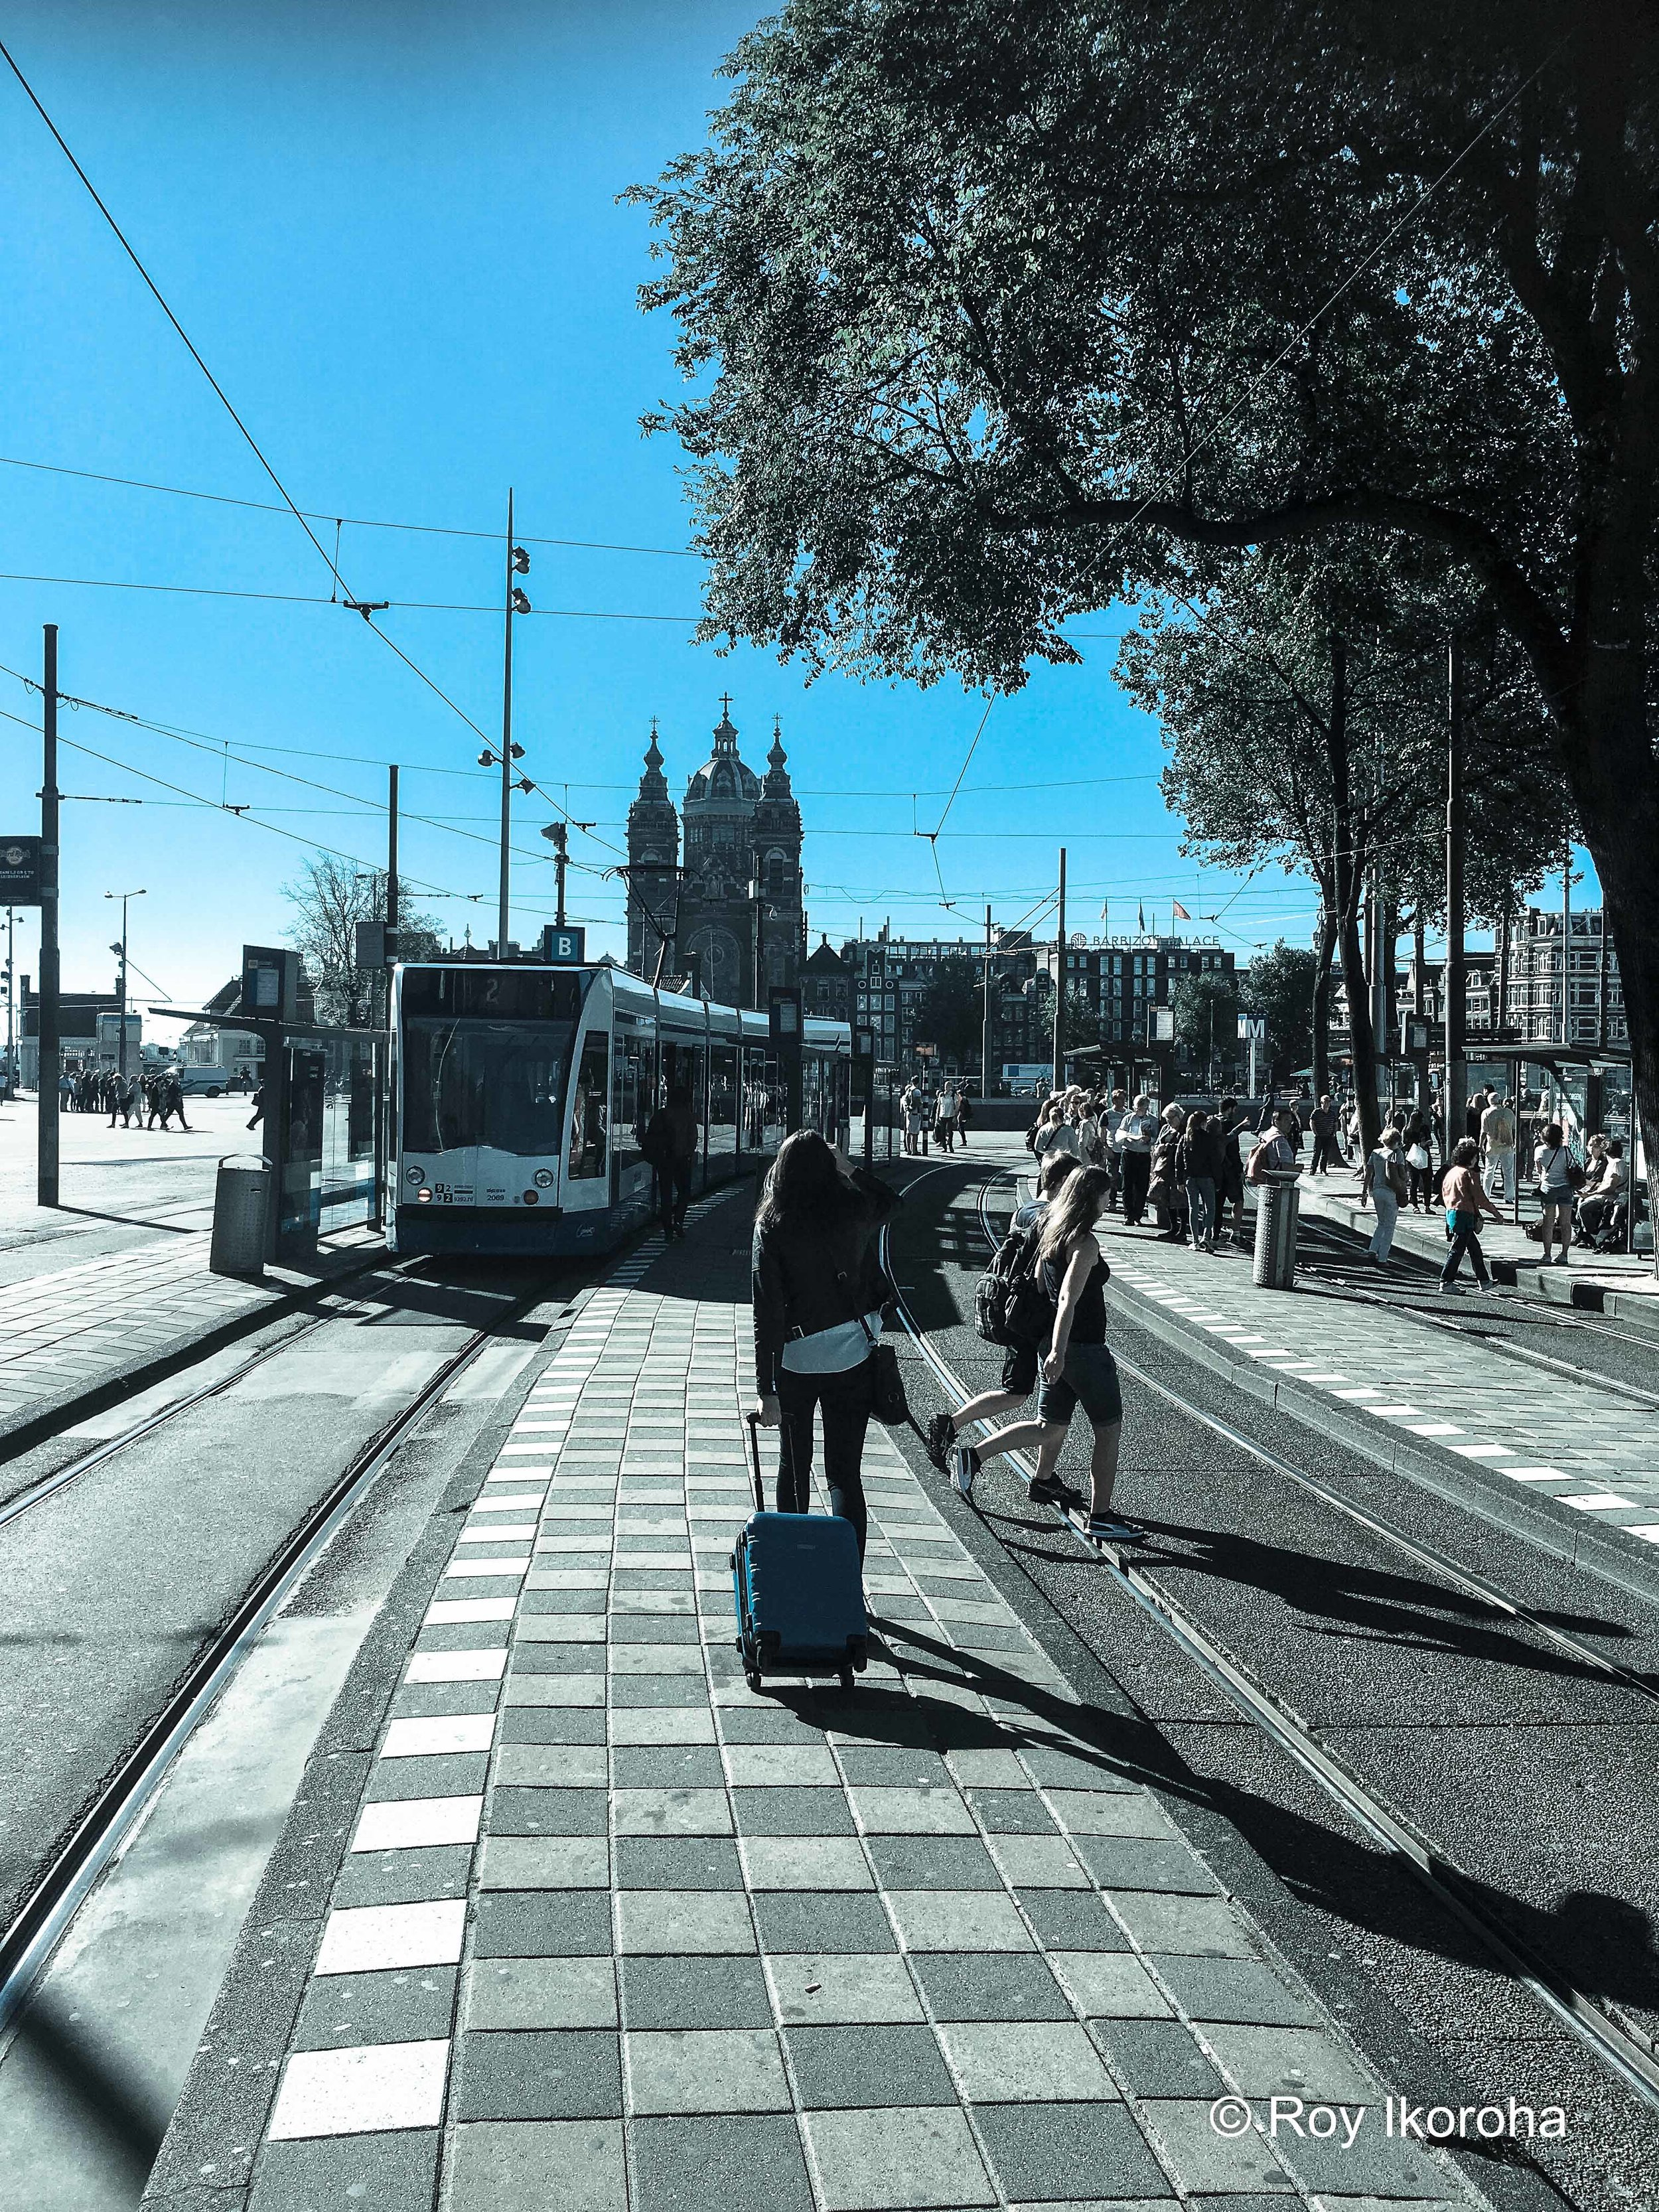 Arriving in Amsterdam's Centraal Station. Heading for the tram south. Netherlands